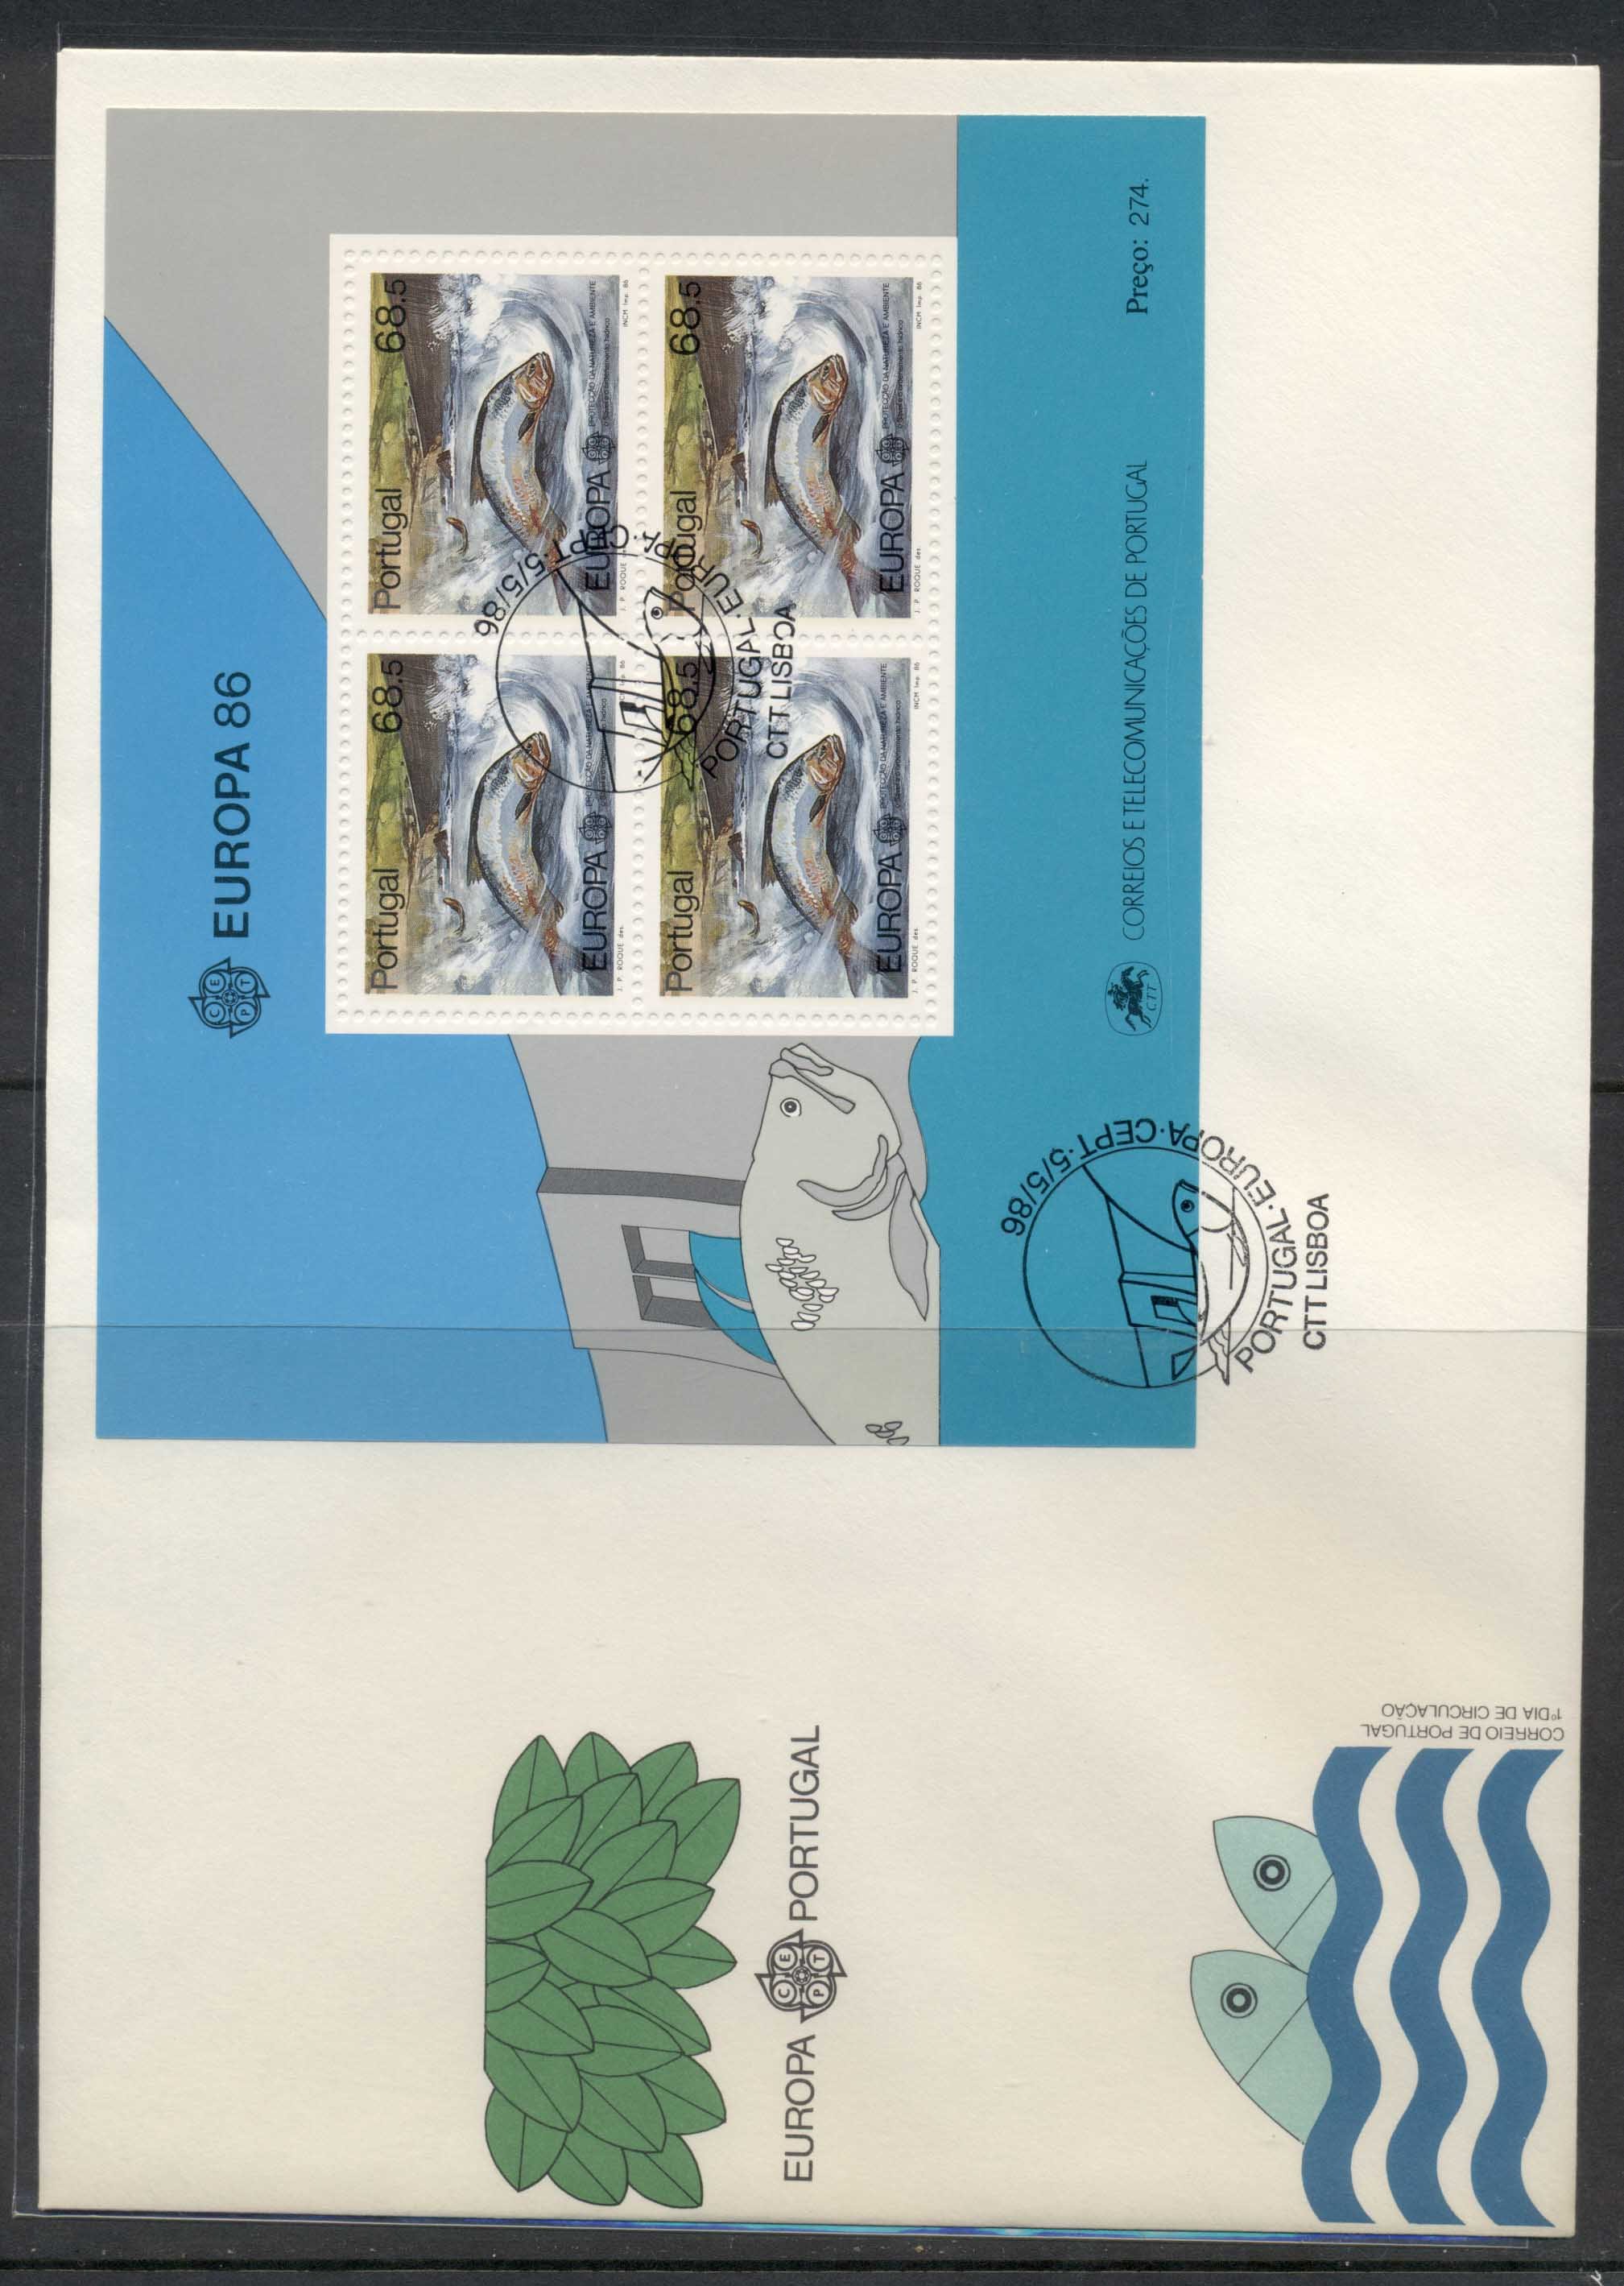 Portugal 1986 Europa Environment XLMS FDC